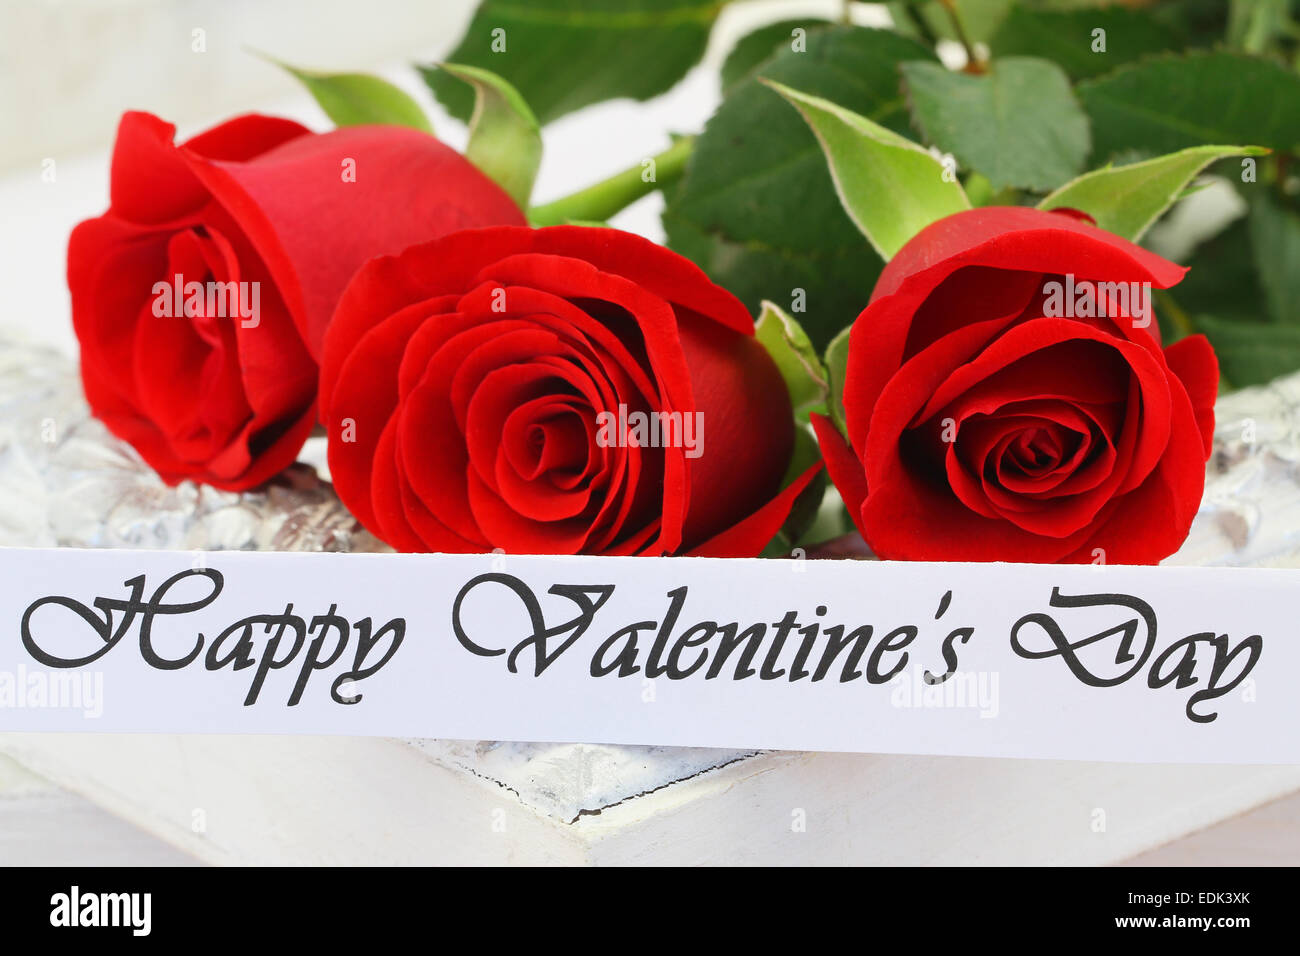 happy valentine's day card with three red roses stock photo, Ideas